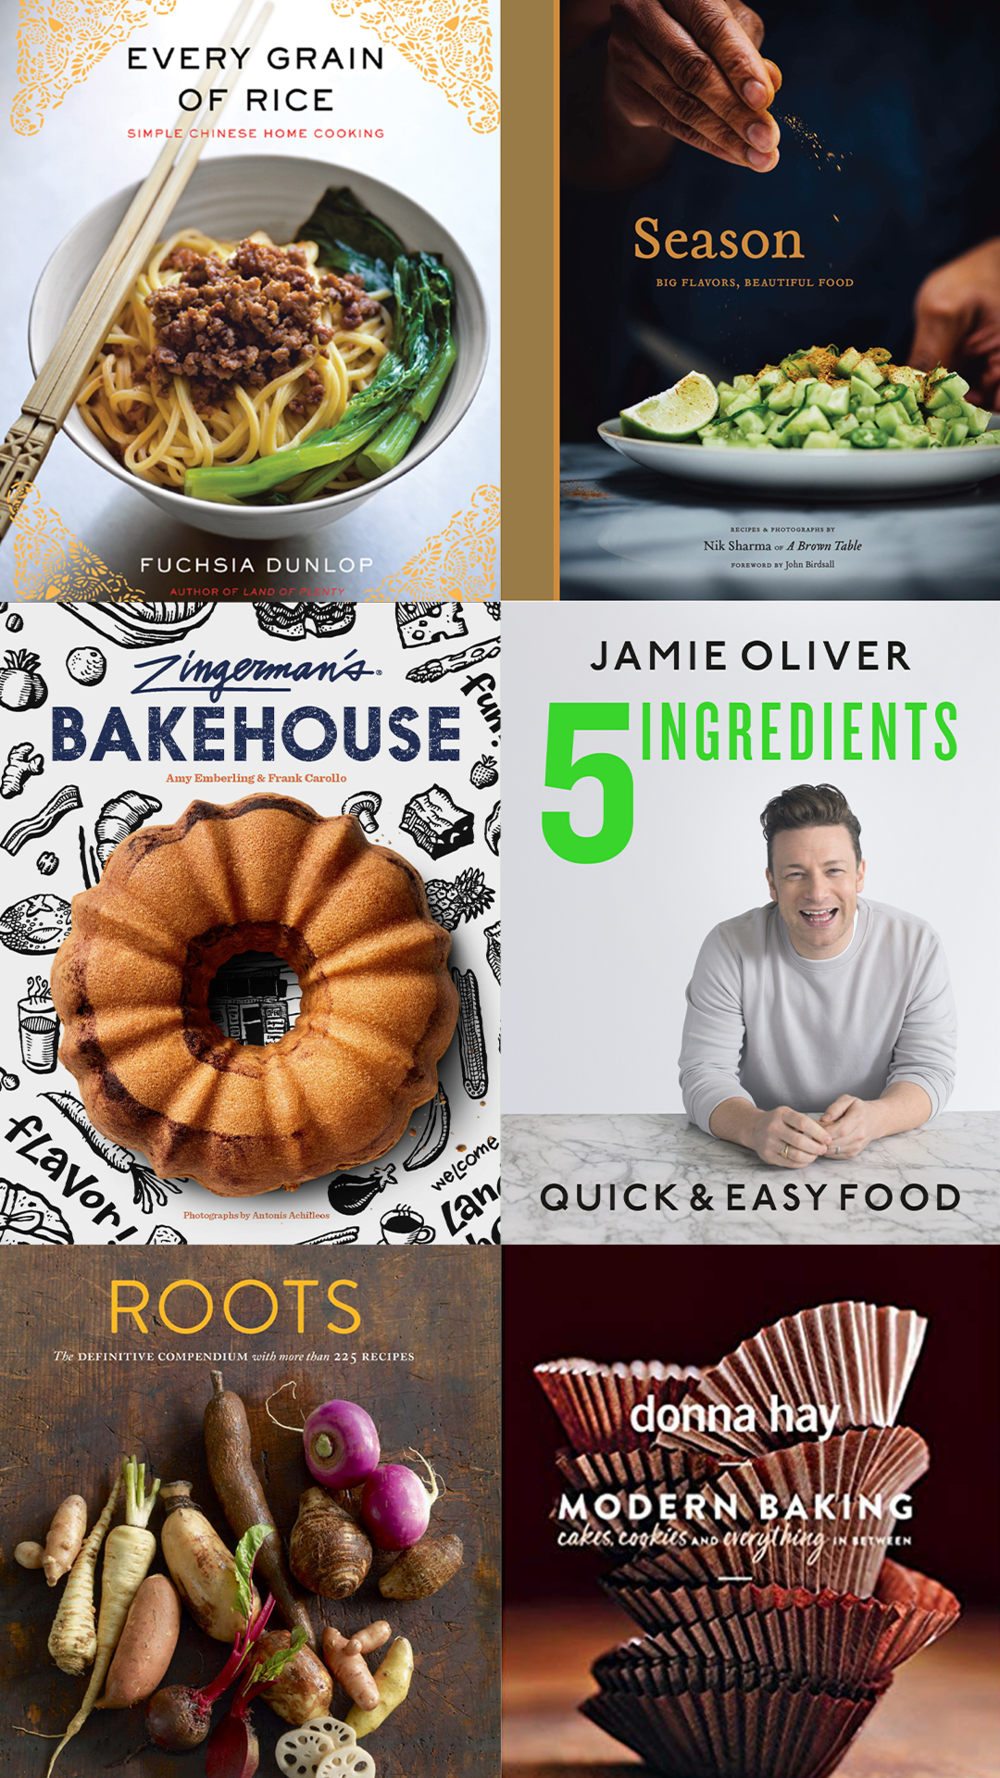 So many great cookbooks have been selected for February cookbook clubs.